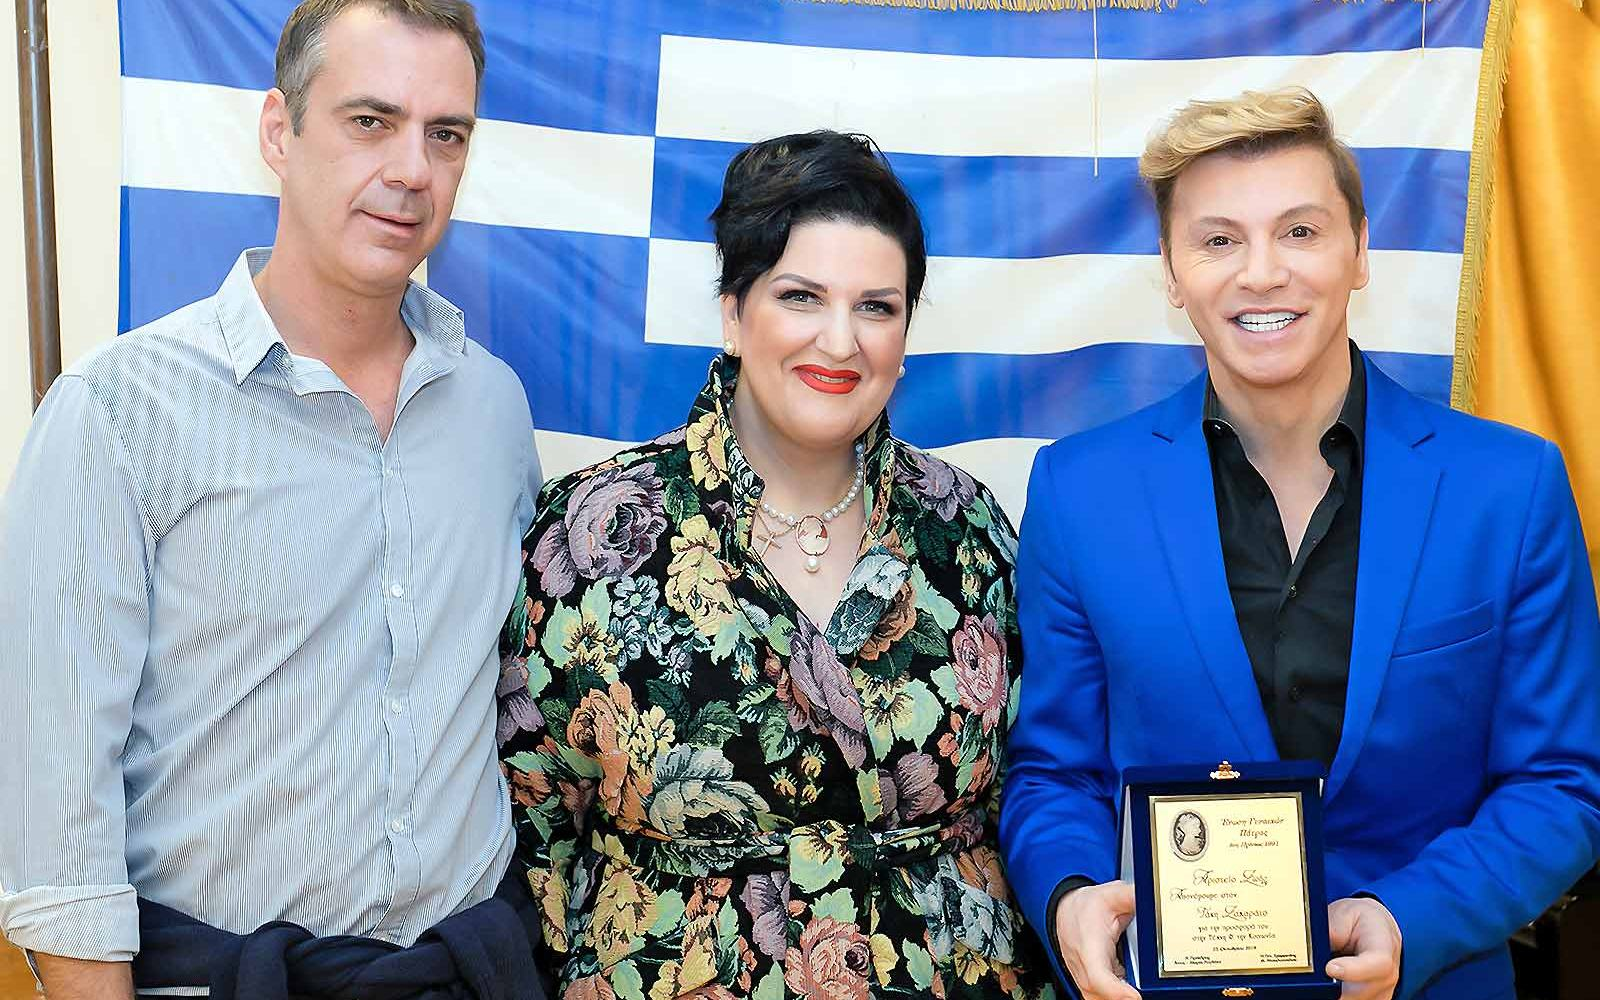 mayor-of-glifada-with-Mrs-Rogdaki-anna-maria-and-Takis-zaxaratos